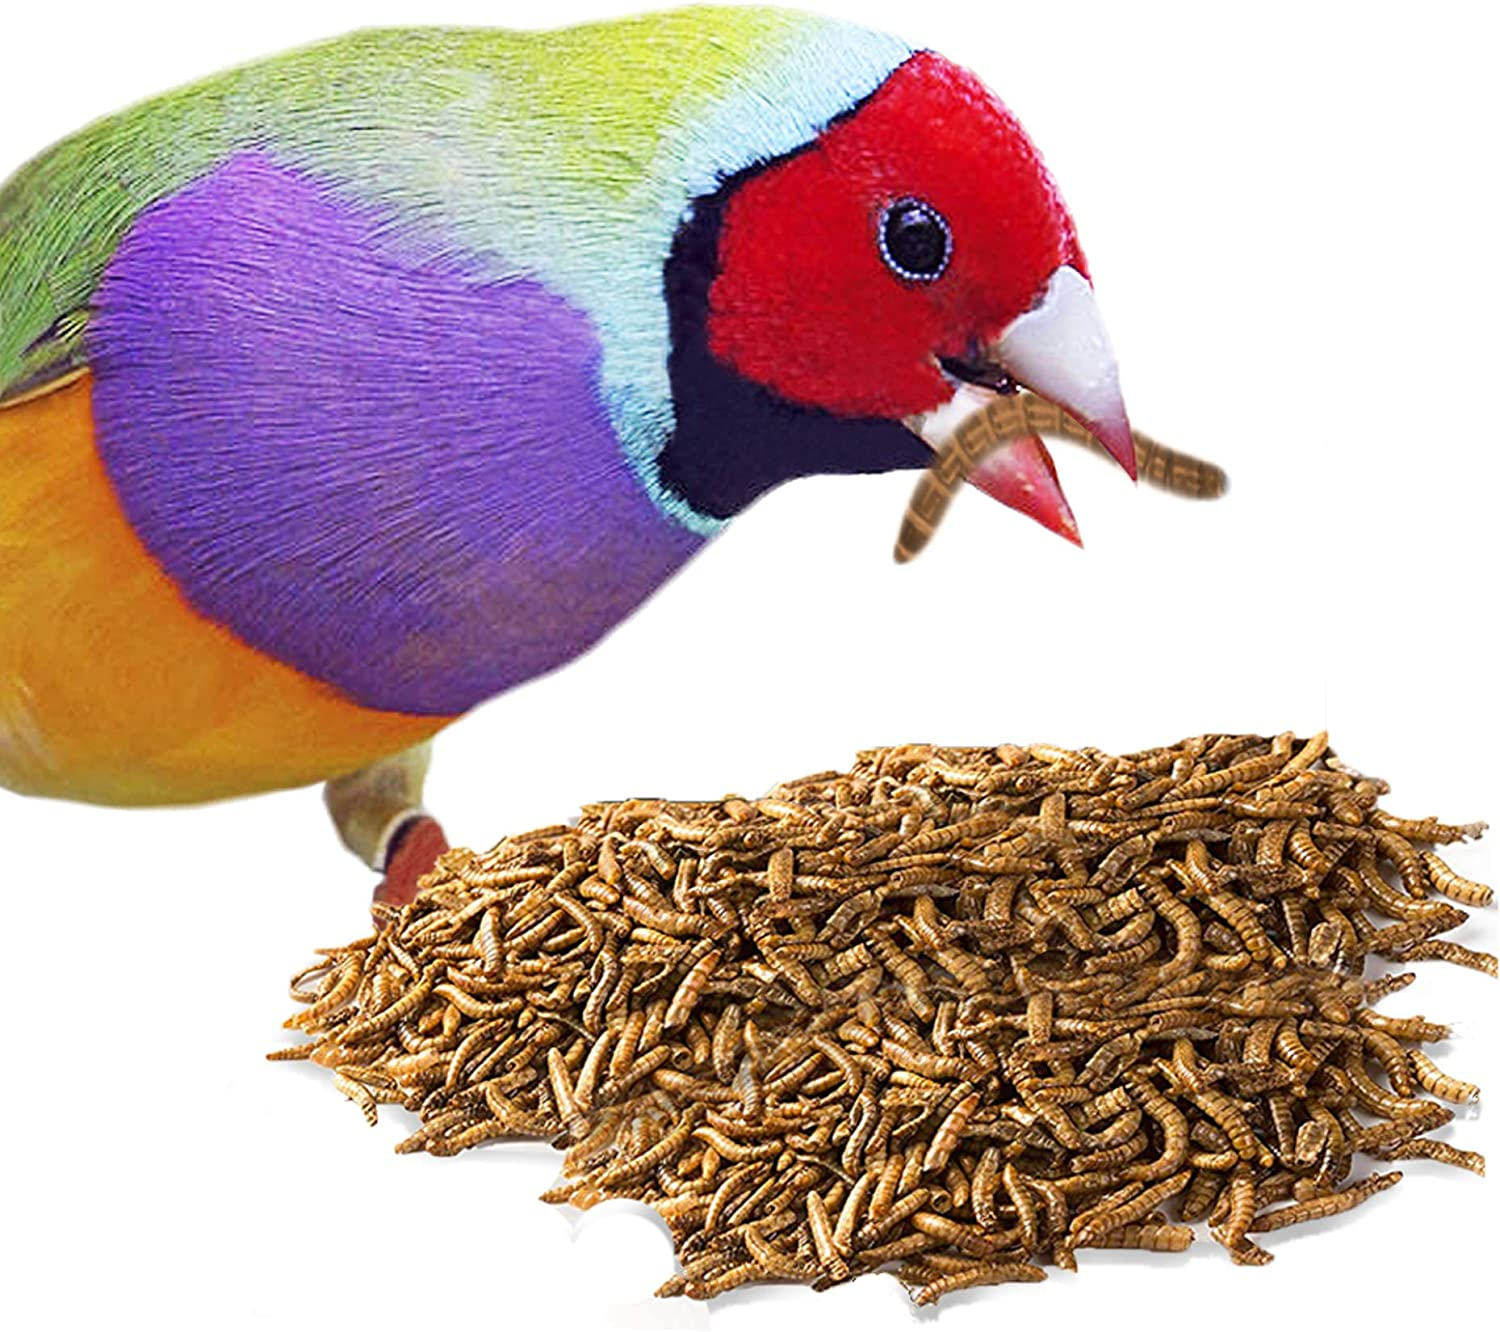 MERIC Mealworm for Birds, Encourages Alertness and Aids in Muscle Development, Supports Reproduction, Well-Balanced Treats, Conveniently Packed in Resealable Zip-Lock Bag, 3.5 oz.